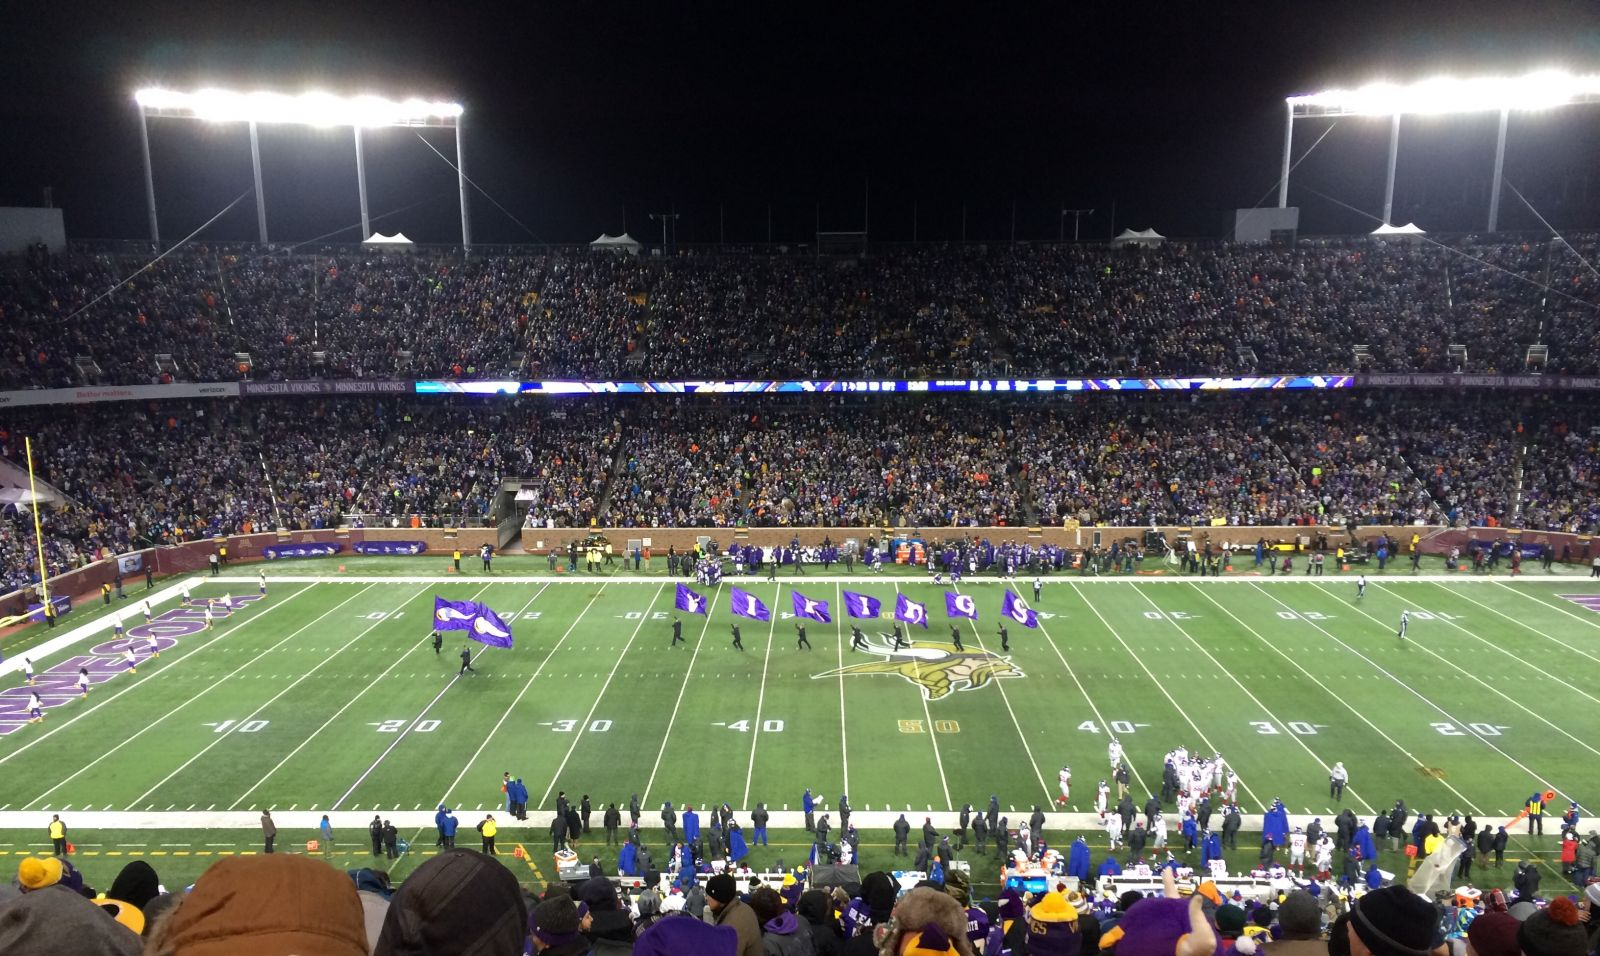 Section 3 seat view